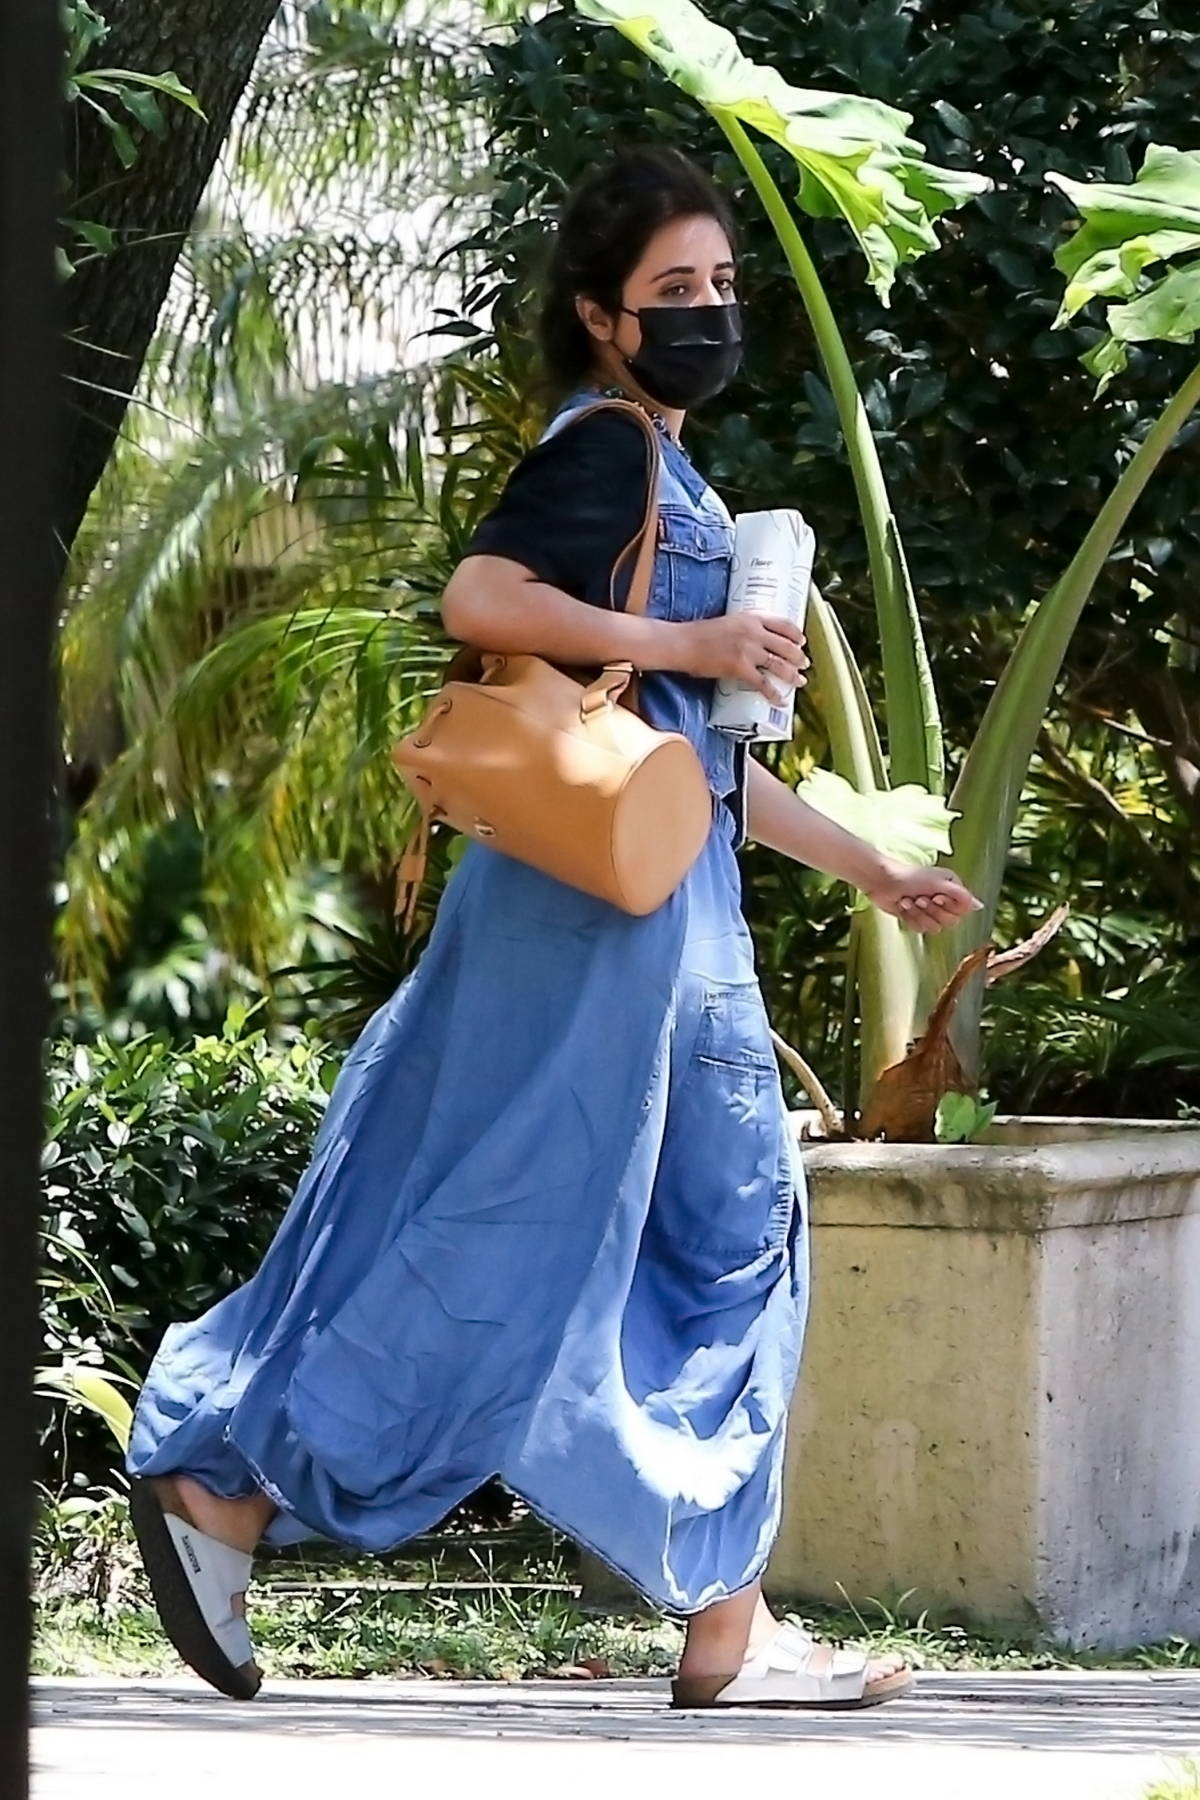 Camila Cabello spotted while taking a driving lesson around her neighborhood in Miami, Florida